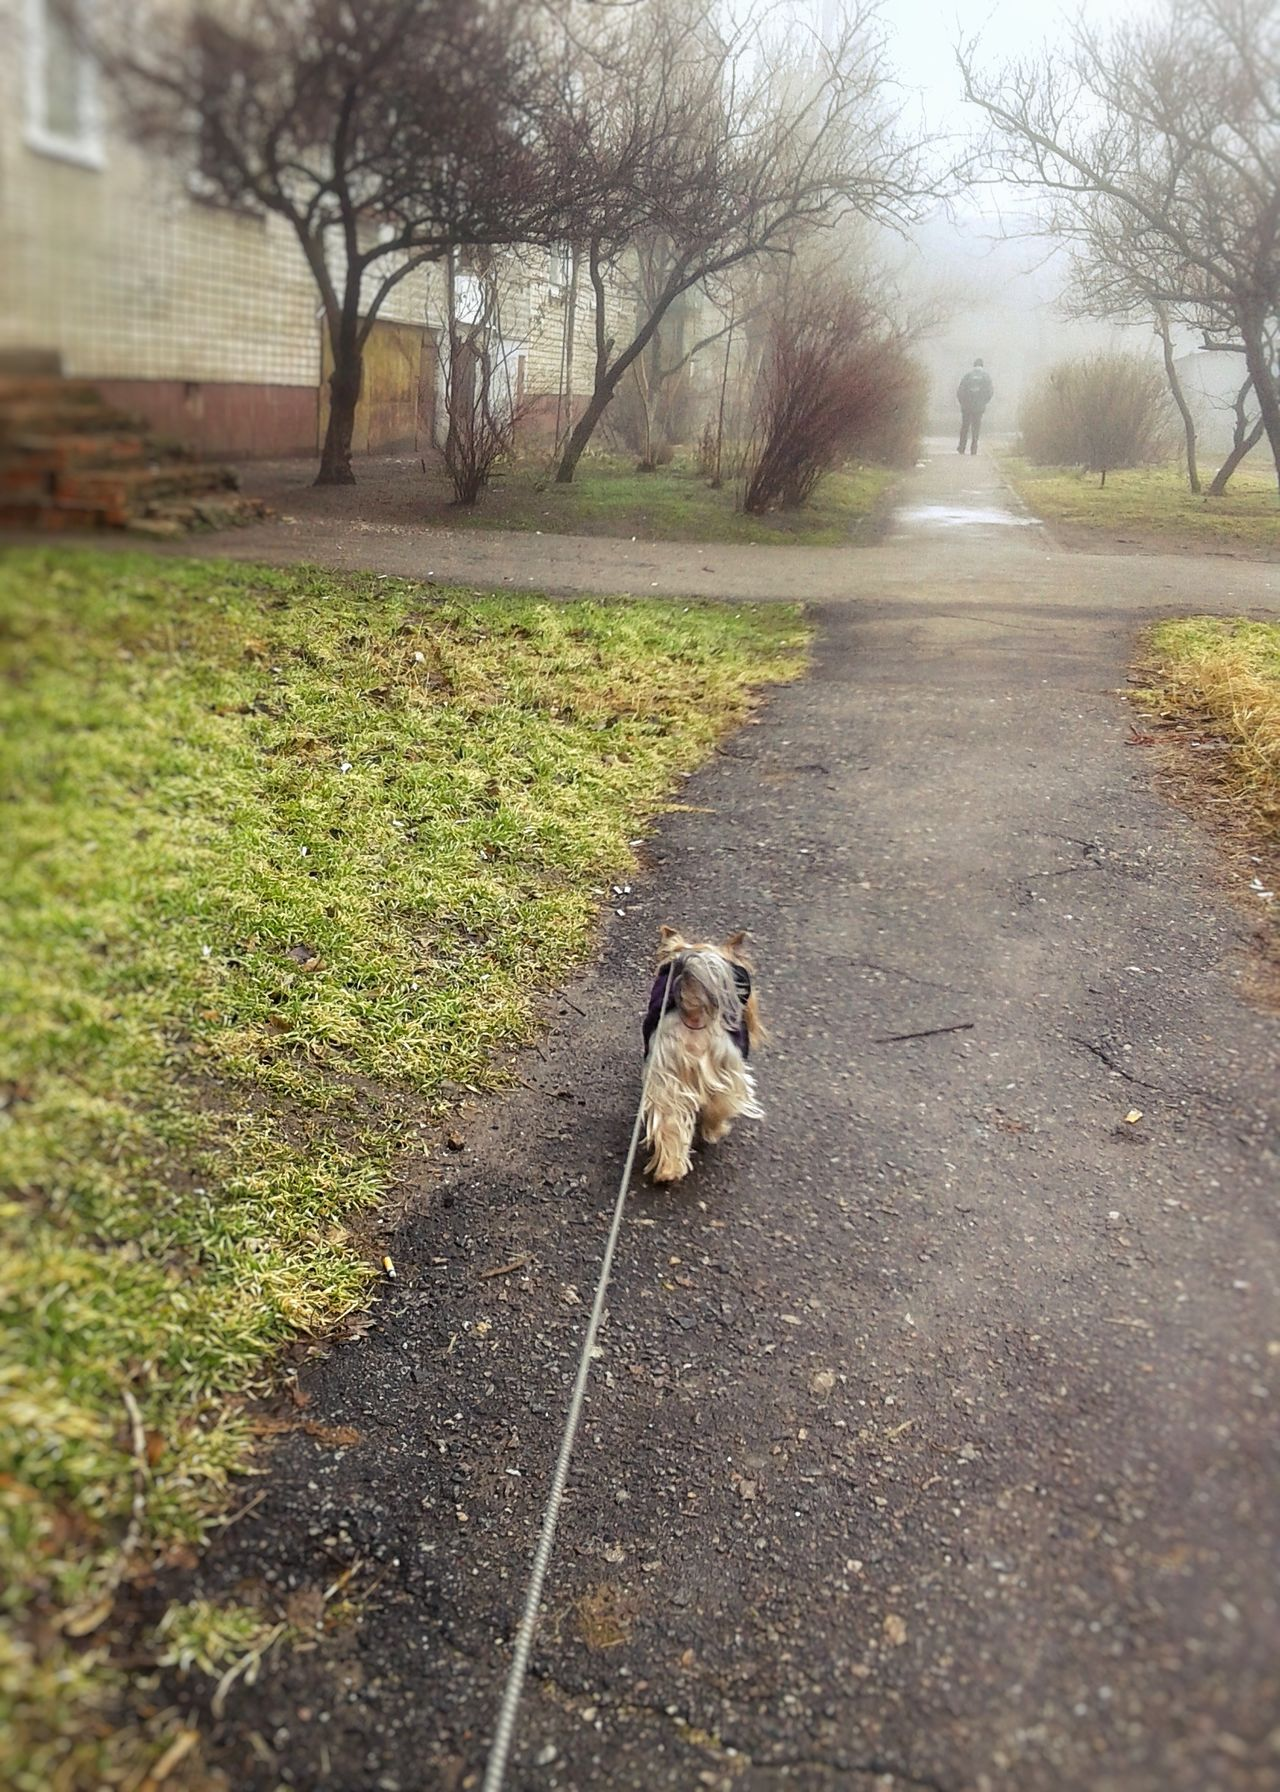 Animal Themes Dog Yorkie Yorkshire Terrier Walking The Dog Spring Has Arrived Town The Way Forward Tranquility Foggy Morning Foggy Springtime Spring Walking Foggy Weather Calm Pastel Colors Outdoor Photography Outdoors Mammal Pets Branch Bare Tree Growth Grass